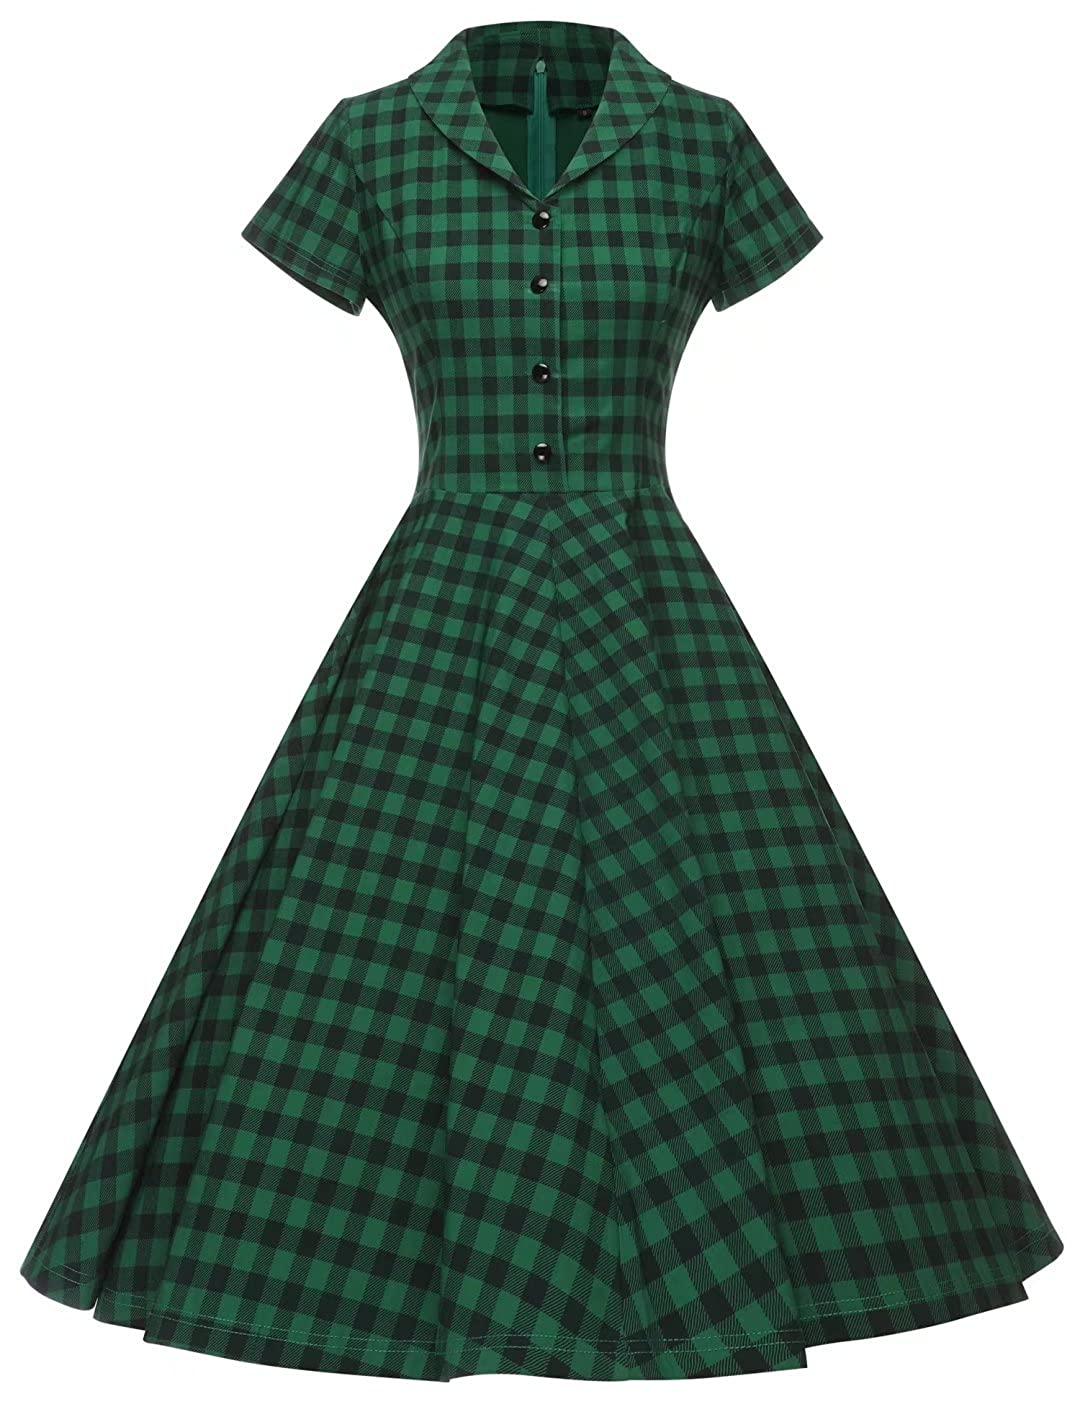 1950s Dresses, 50s Dresses | 1950s Style Dresses GownTown Womens 1950s Vintage Cap Sleeve Plaid Swing Dress with Pockets $38.98 AT vintagedancer.com